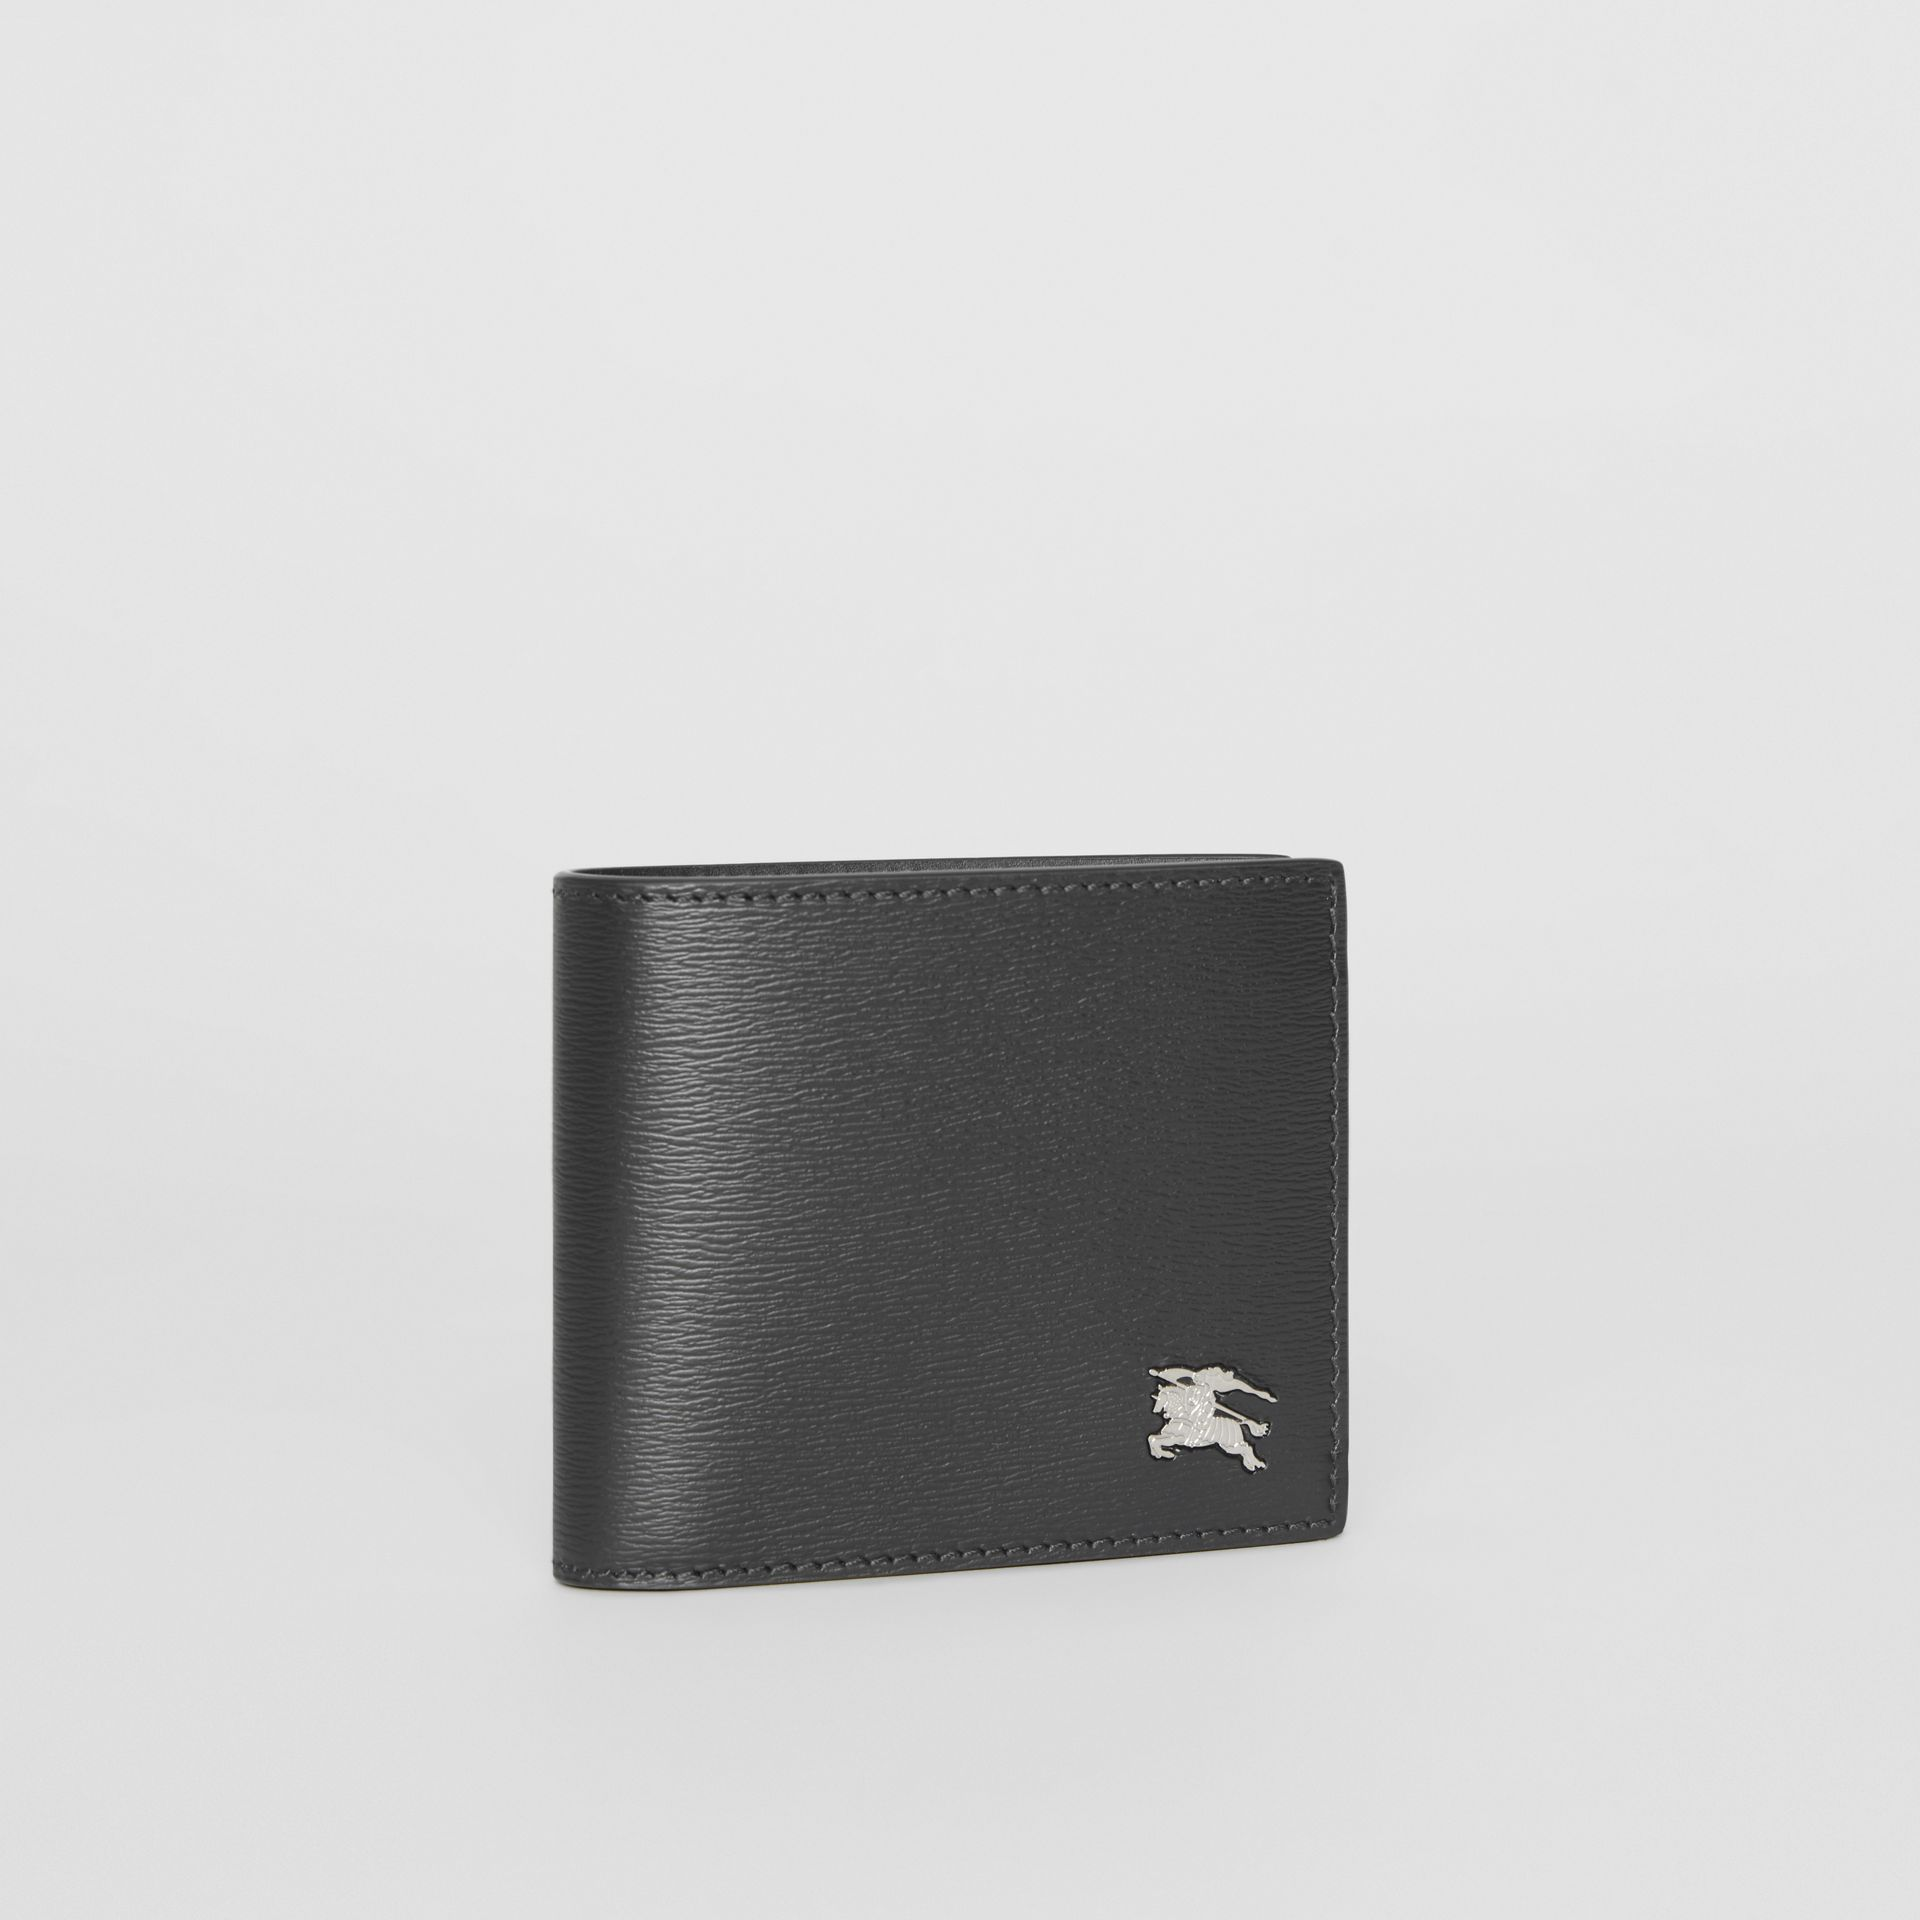 EKD London Leather Bifold Wallet with ID Card Case in Black - Men | Burberry United Kingdom - gallery image 4